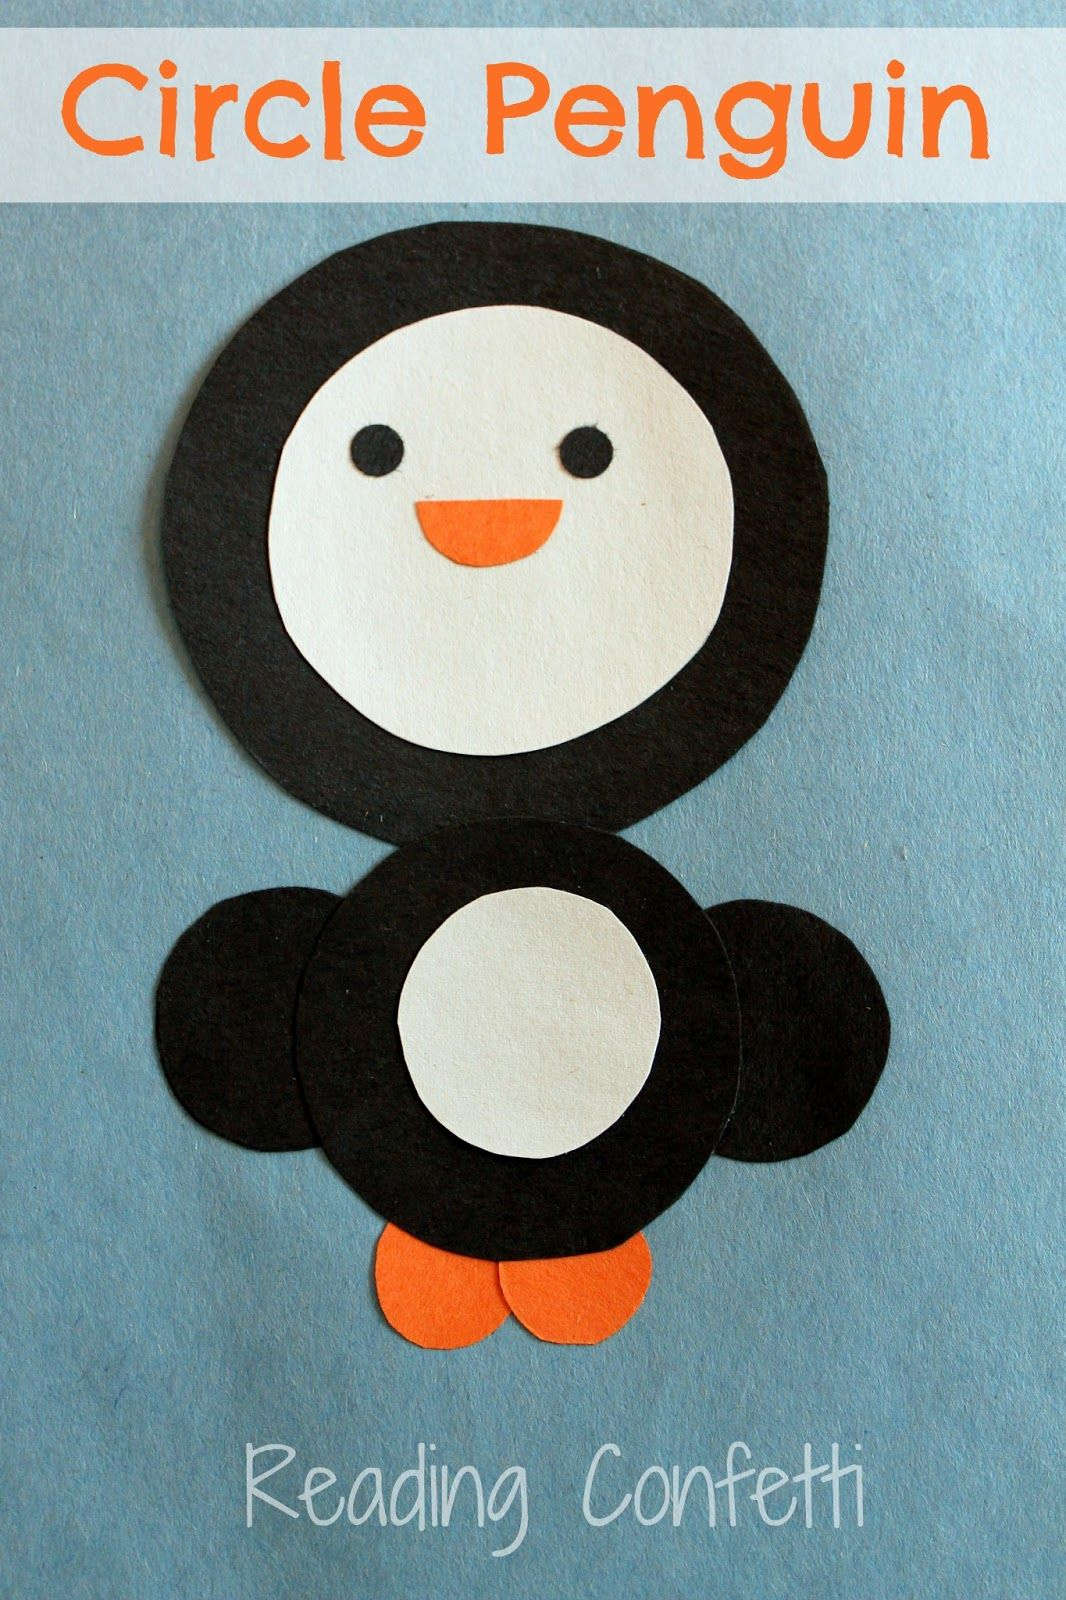 Super cute circle penguin craft - I think this one is great for our shape theme next week in my preschool class #penguincraft